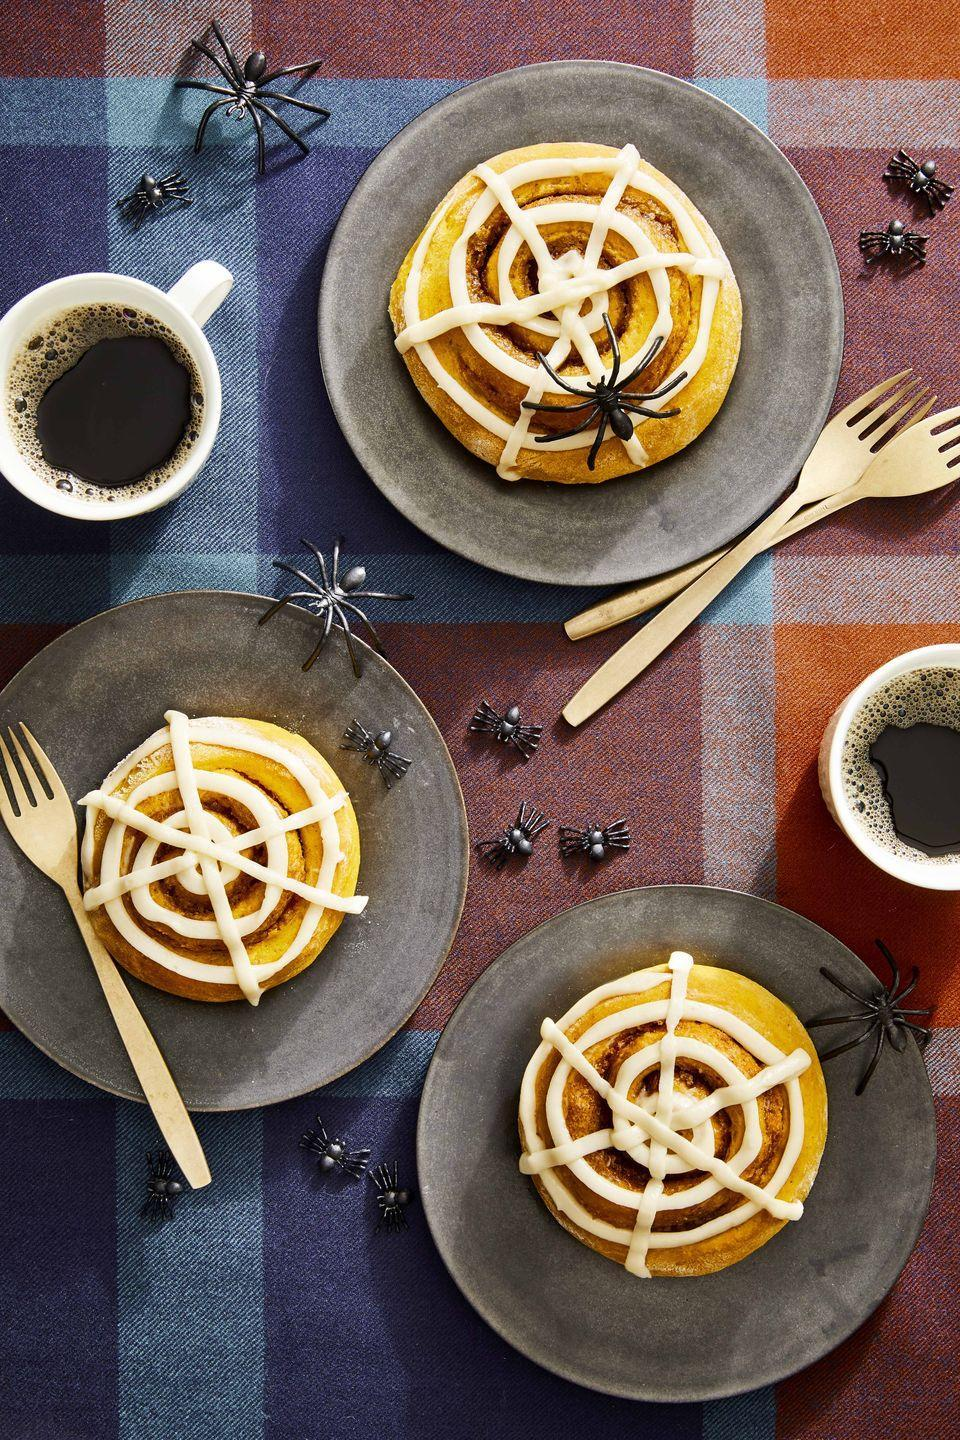 """<p>These sweet, spooky-looking buns are packed with seasonal flavors, and go perfectly with a cup of coffee after dinner.</p><p><strong><a href=""""https://www.countryliving.com/food-drinks/a33943653/pumpkin-spiced-buns/"""" rel=""""nofollow noopener"""" target=""""_blank"""" data-ylk=""""slk:Get the recipe"""" class=""""link rapid-noclick-resp"""">Get the recipe</a>.</strong></p><p><strong><a class=""""link rapid-noclick-resp"""" href=""""https://www.amazon.com/6-5-QT-6-Speed-Tilt-Head-Kitchen-Electric/dp/B07NY886CD/?tag=syn-yahoo-20&ascsubtag=%5Bartid%7C10050.g.454%5Bsrc%7Cyahoo-us"""" rel=""""nofollow noopener"""" target=""""_blank"""" data-ylk=""""slk:SHOP ELECTRIC MIXERS"""">SHOP ELECTRIC MIXERS</a></strong></p>"""